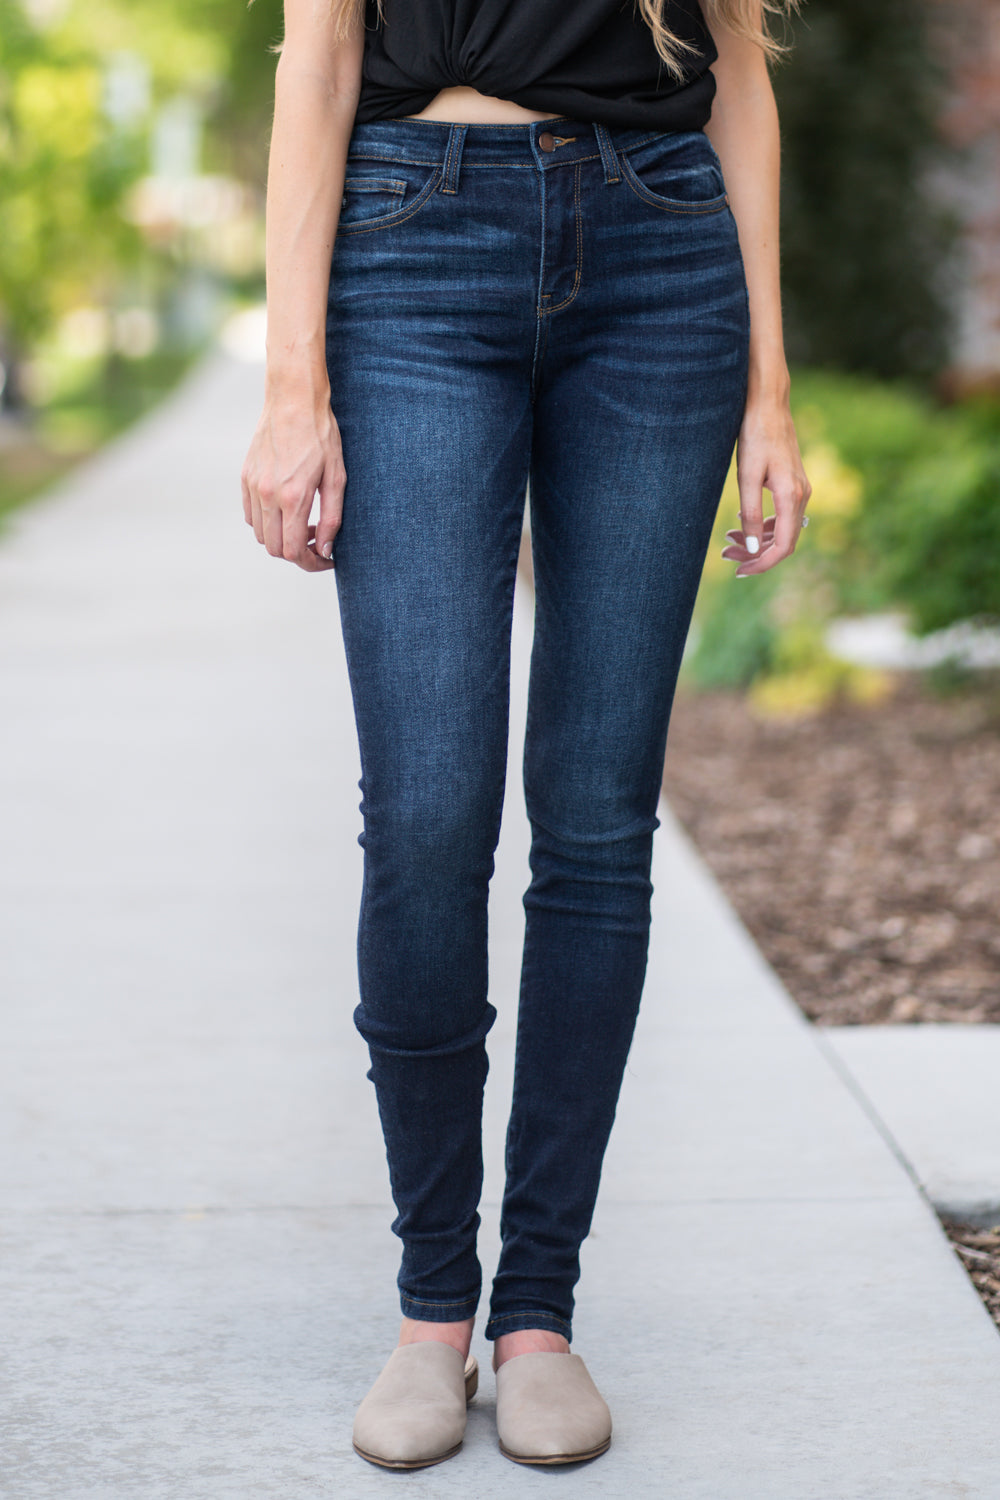 "Judy Blue Collection: Summer 2020 Color: Dark Wash Cut: Skinny, 34"" Inseam, Un-cuffed  Rise: High-Rise. 9.75"" Front Rise Material: 93% COTTON, 6% POLYESTER 1% SPANDEX Machine Wash Separately In Cold Water Stitching: Classic Fly: Zipper Style #: JB82152 , 82152"